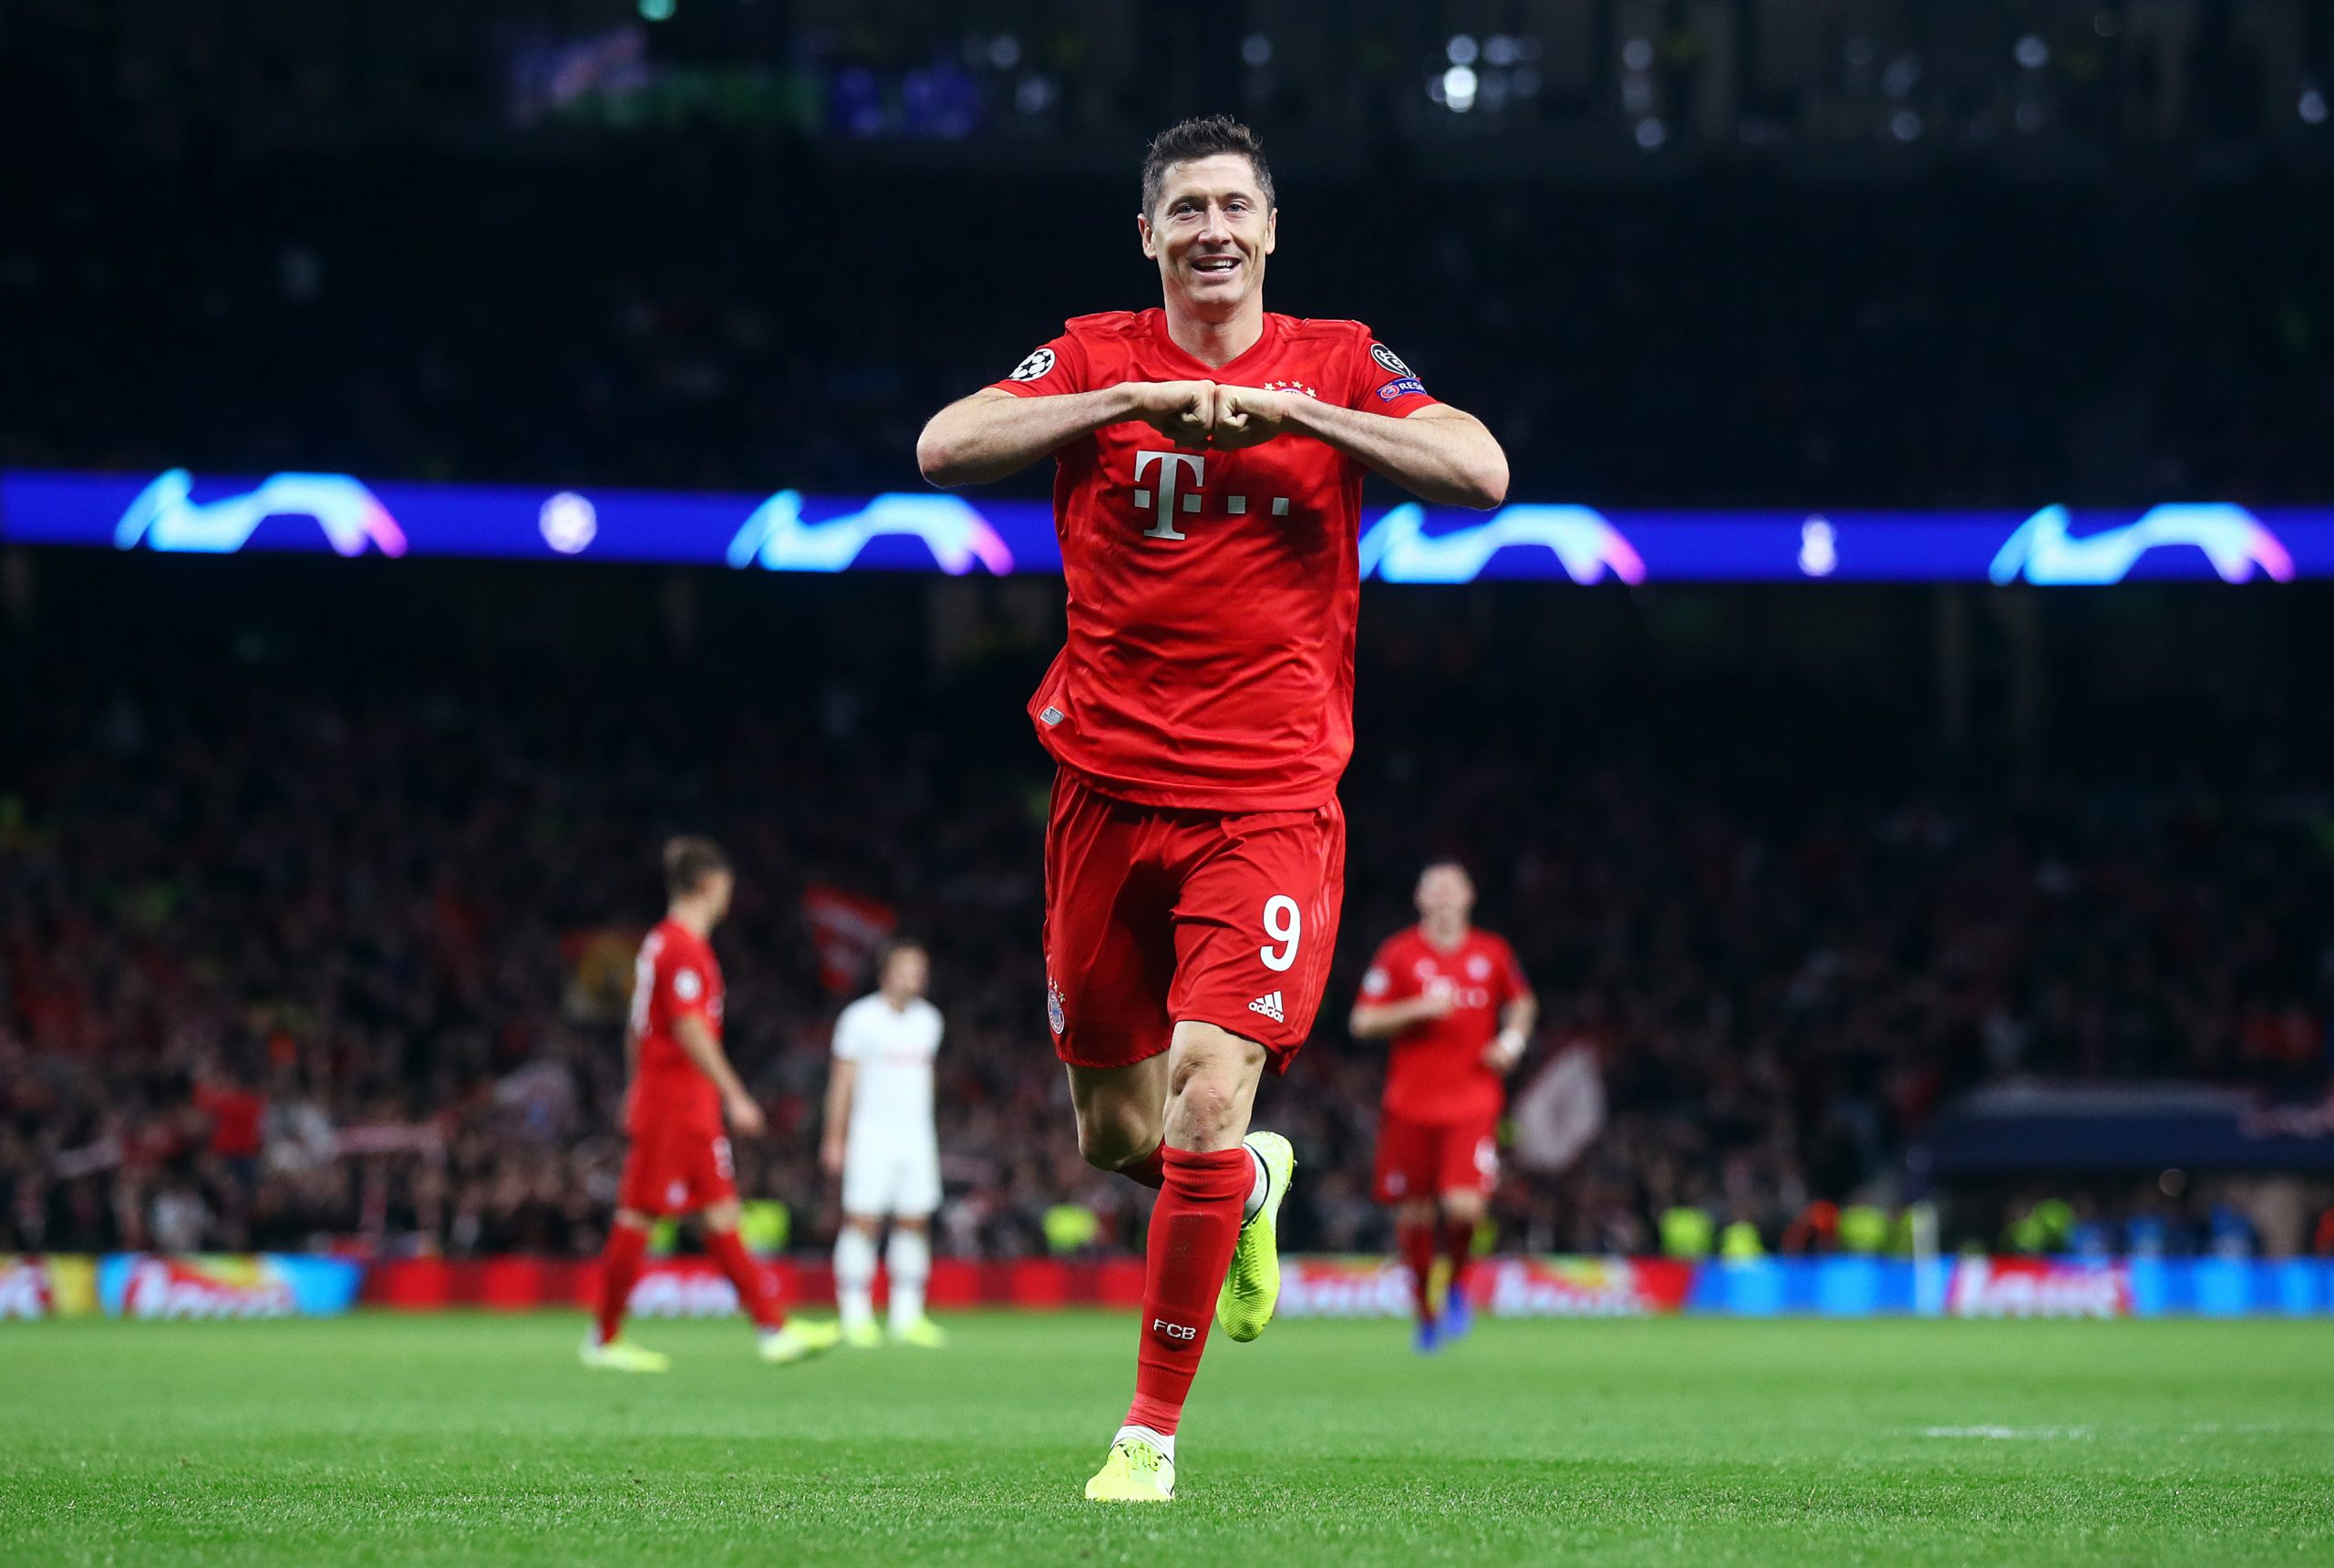 UEFA Announces Shortlist for Nominees of Champions League Positional Awards